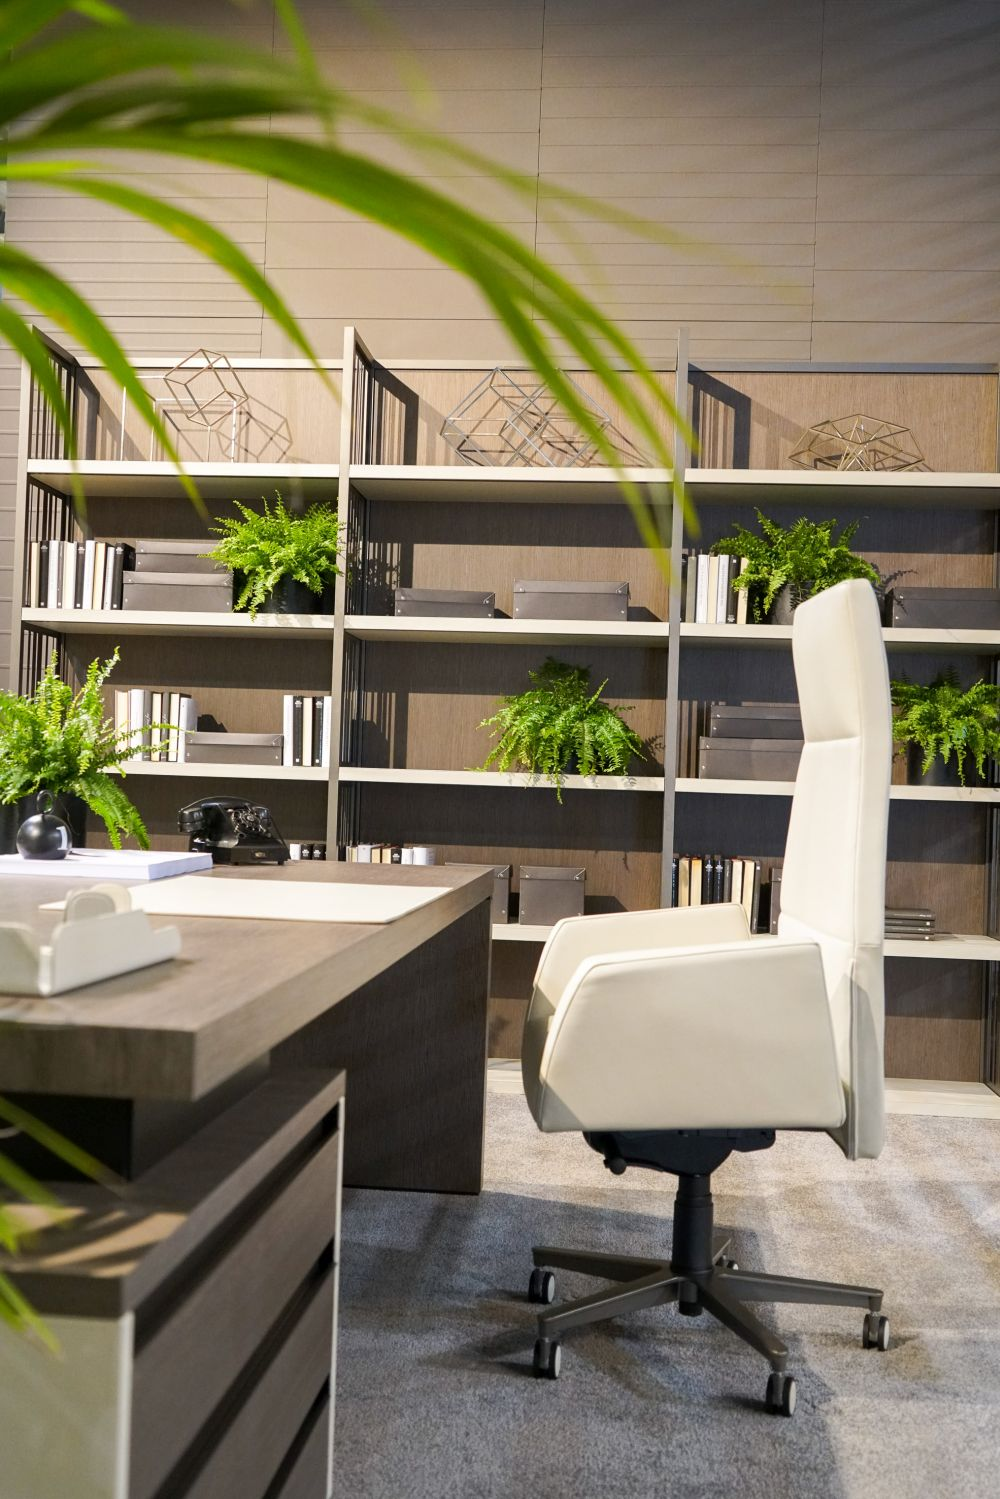 1572958304 53 make your workplace more appealing with these office furniture ideas - Make Your Workplace More Appealing with These Office Furniture Ideas